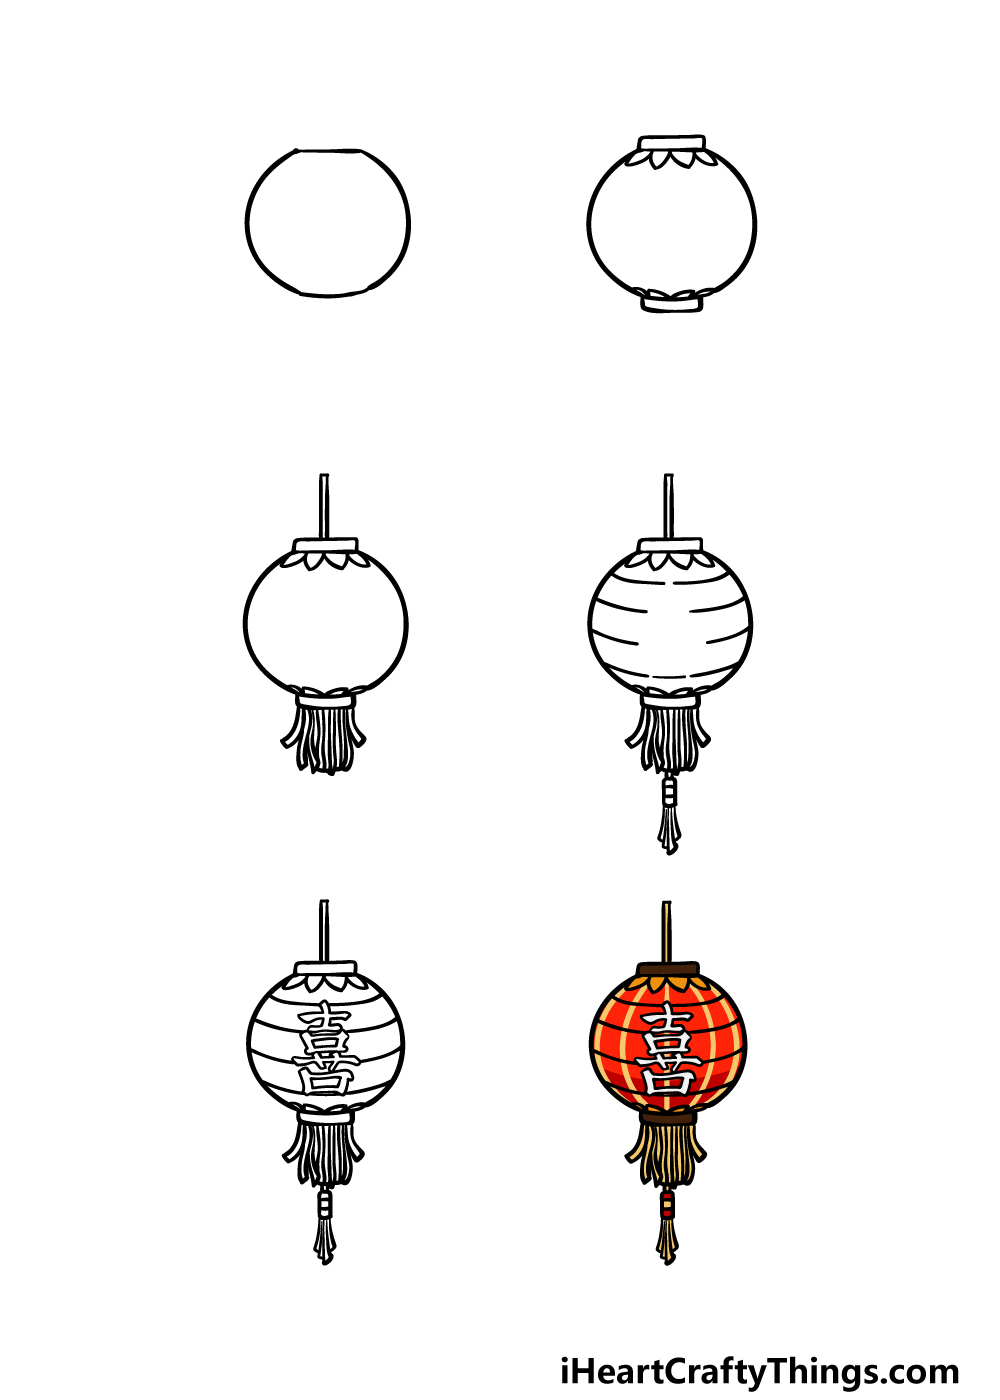 how to draw a lantern in 6 steps